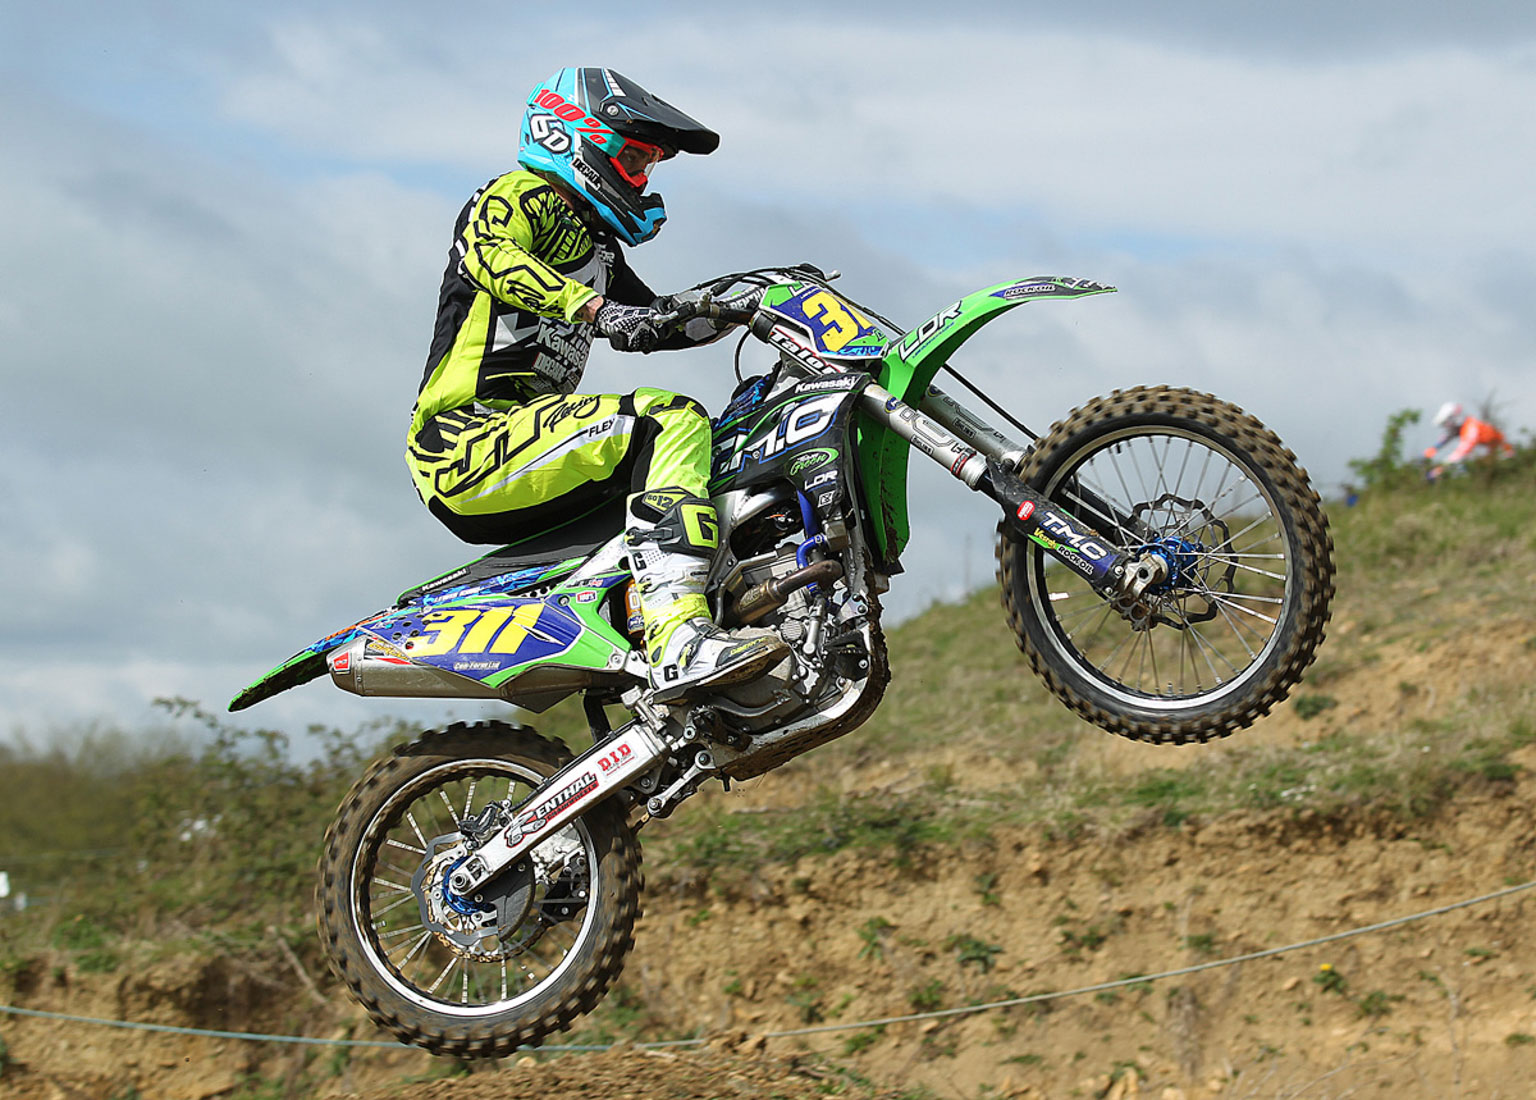 Lewis King, 3rd in MX2